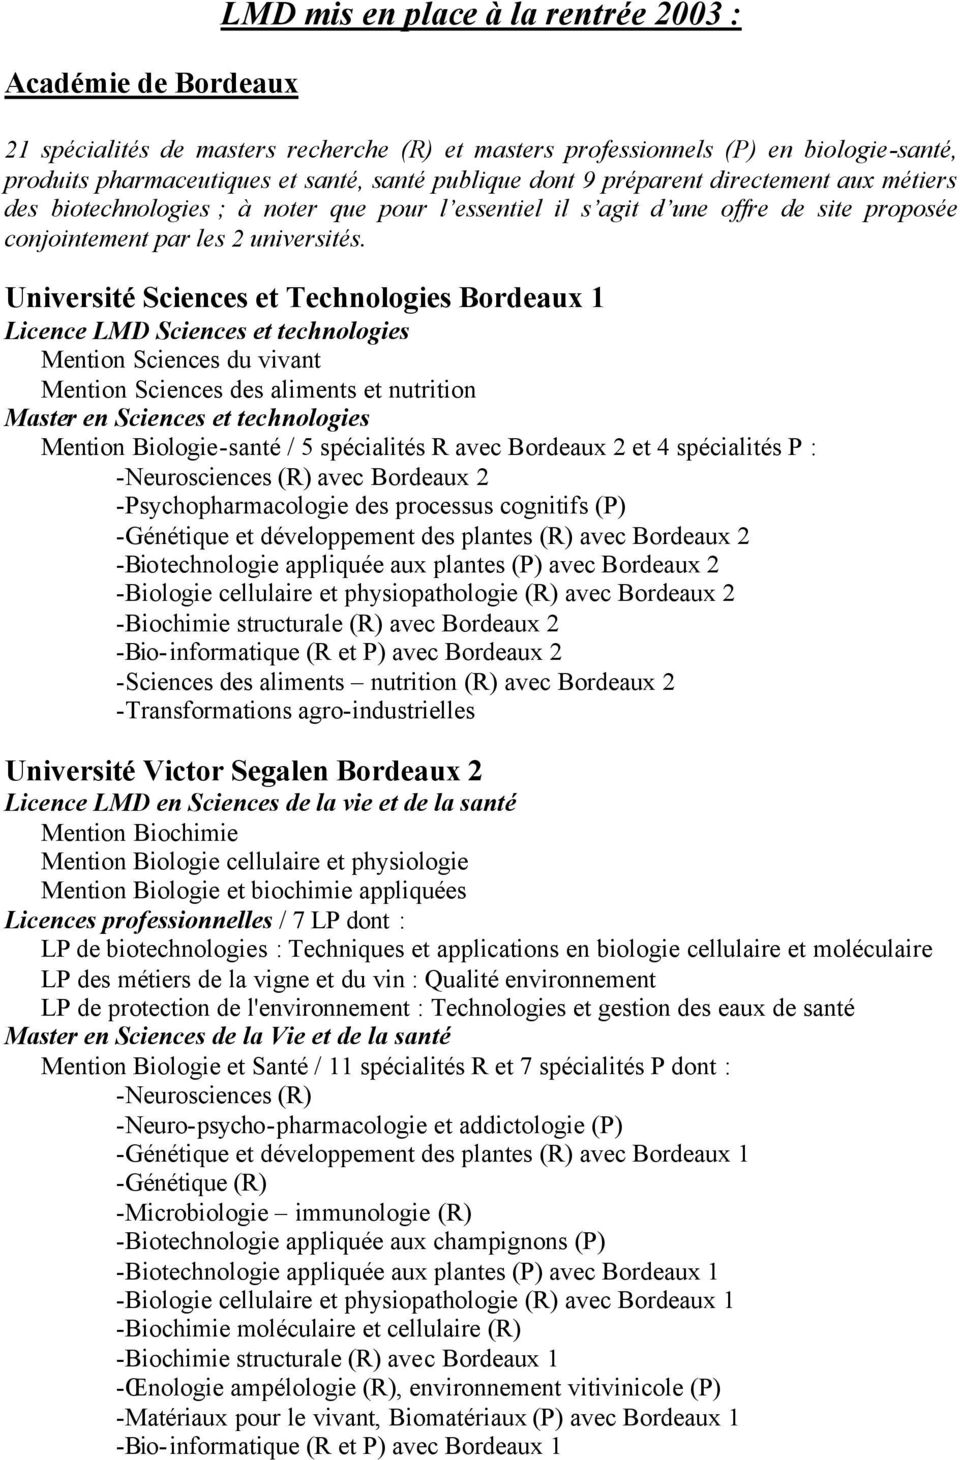 Université Sciences et Technologies Bordeaux 1 Licence LMD Sciences et technologies Mention Sciences du vivant Mention Sciences des aliments et nutrition Master en Sciences et technologies Mention